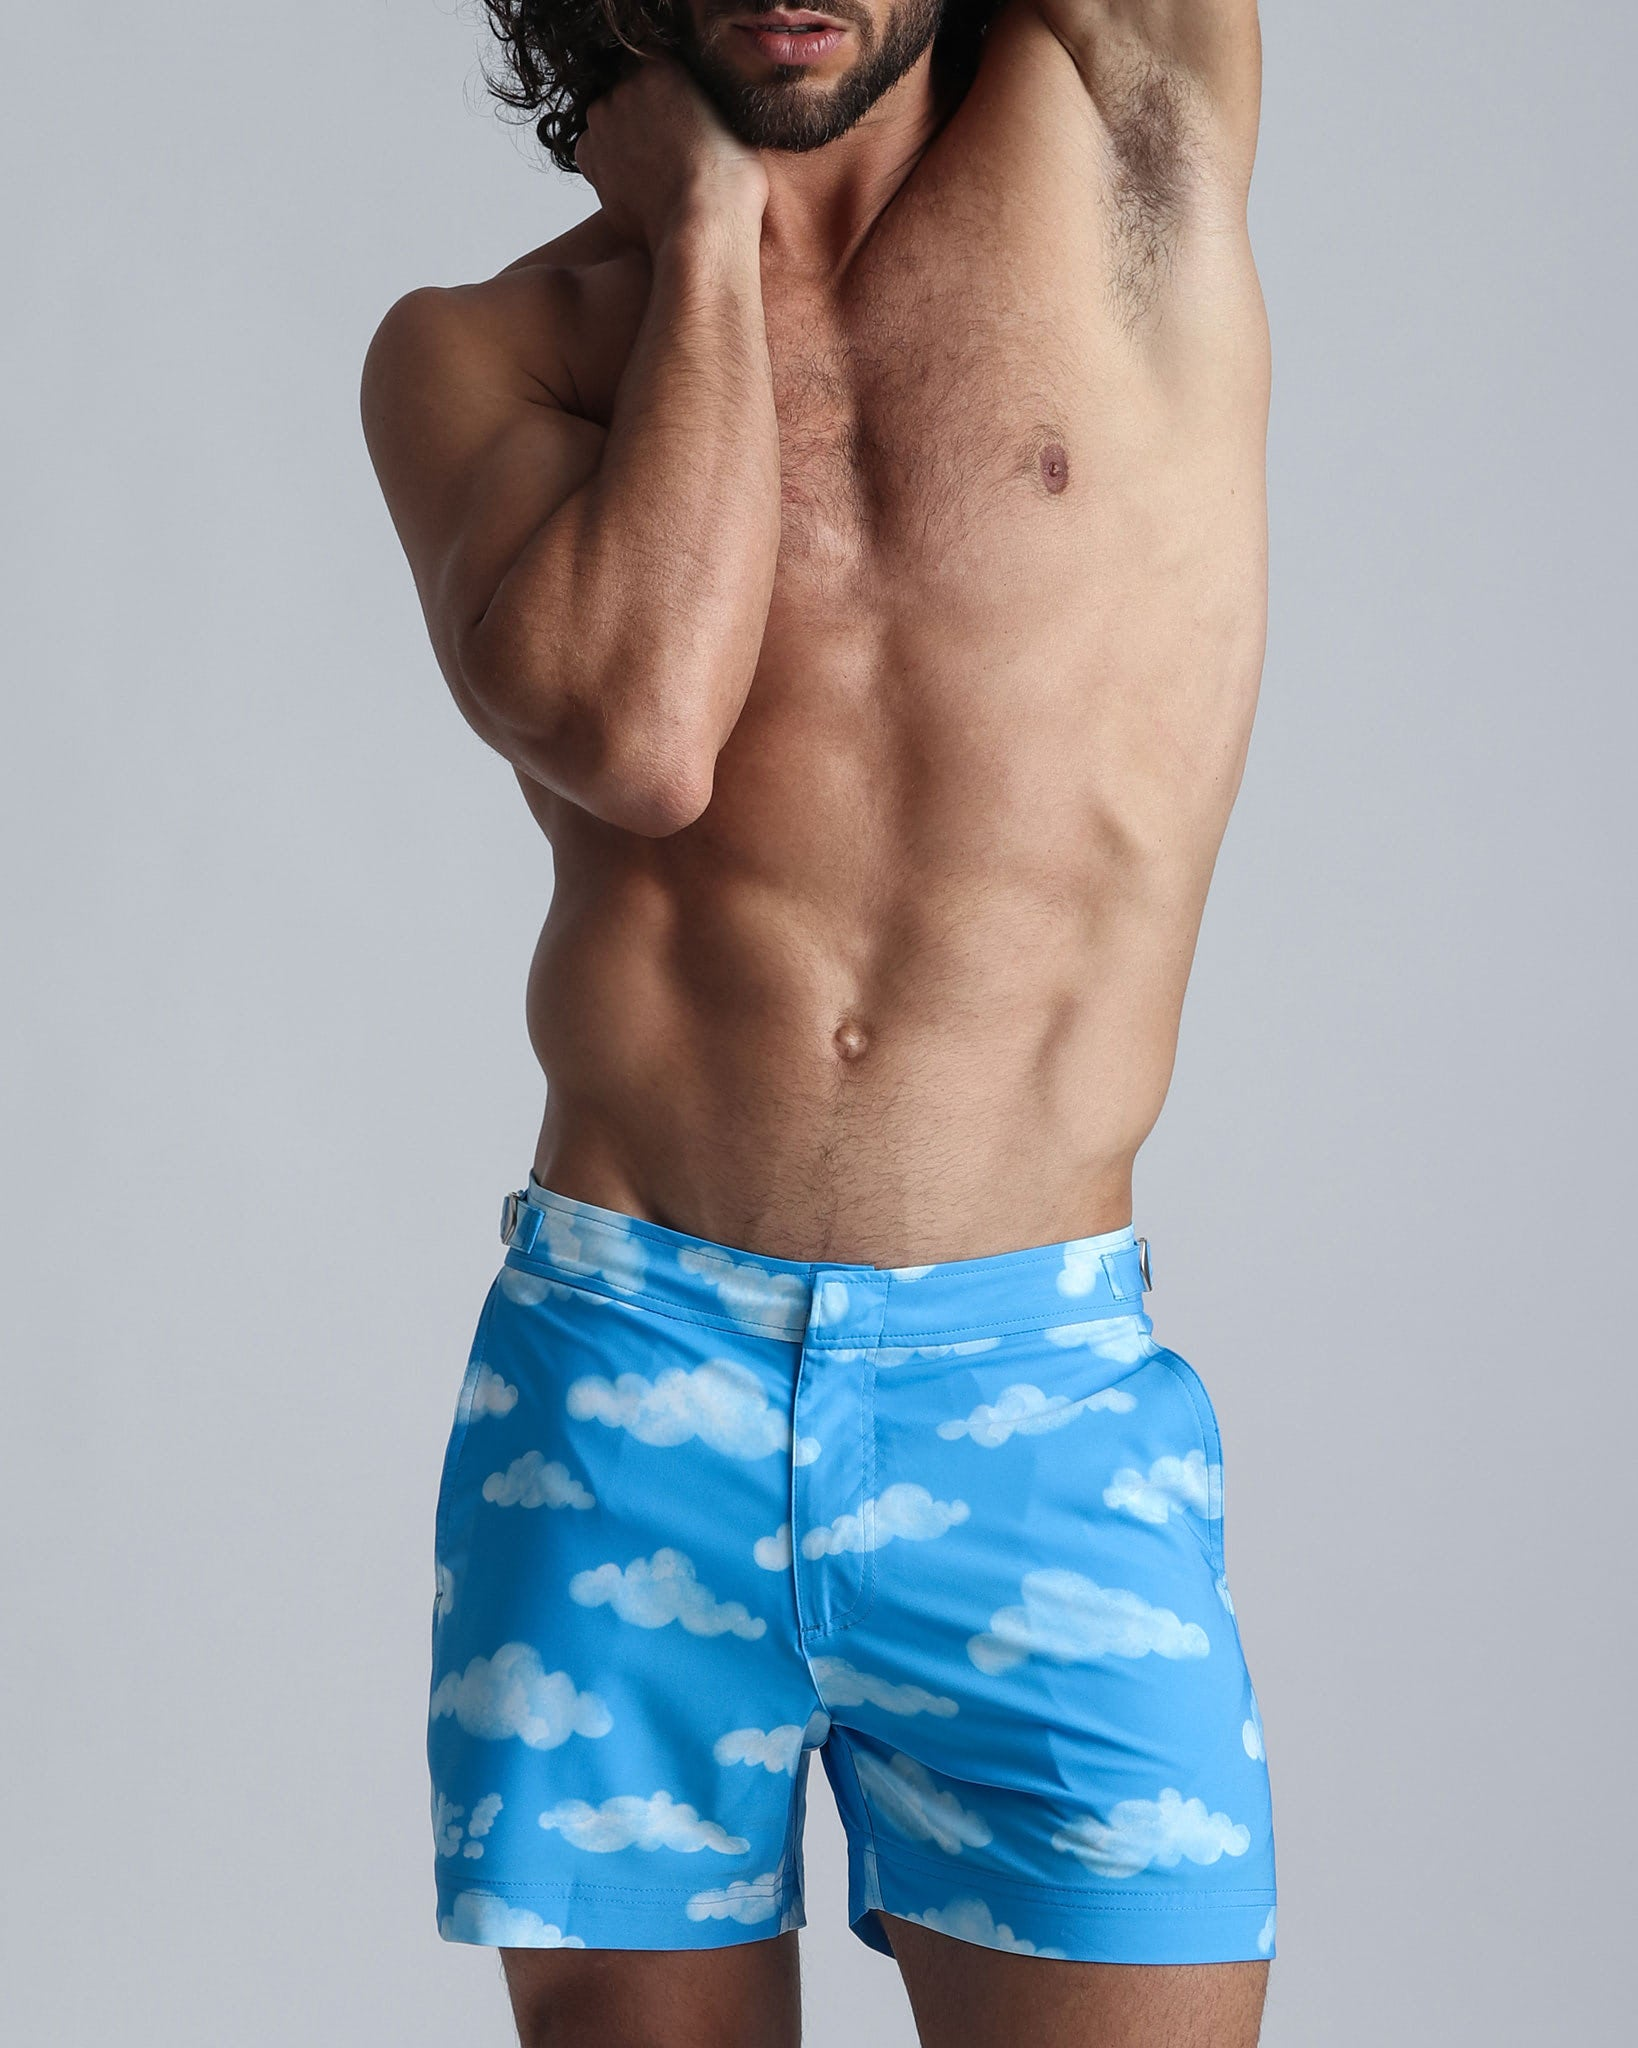 ABOVE THE CLOUDS Tailored Shorts Bang Clothes Men Swimwear Swimsuits